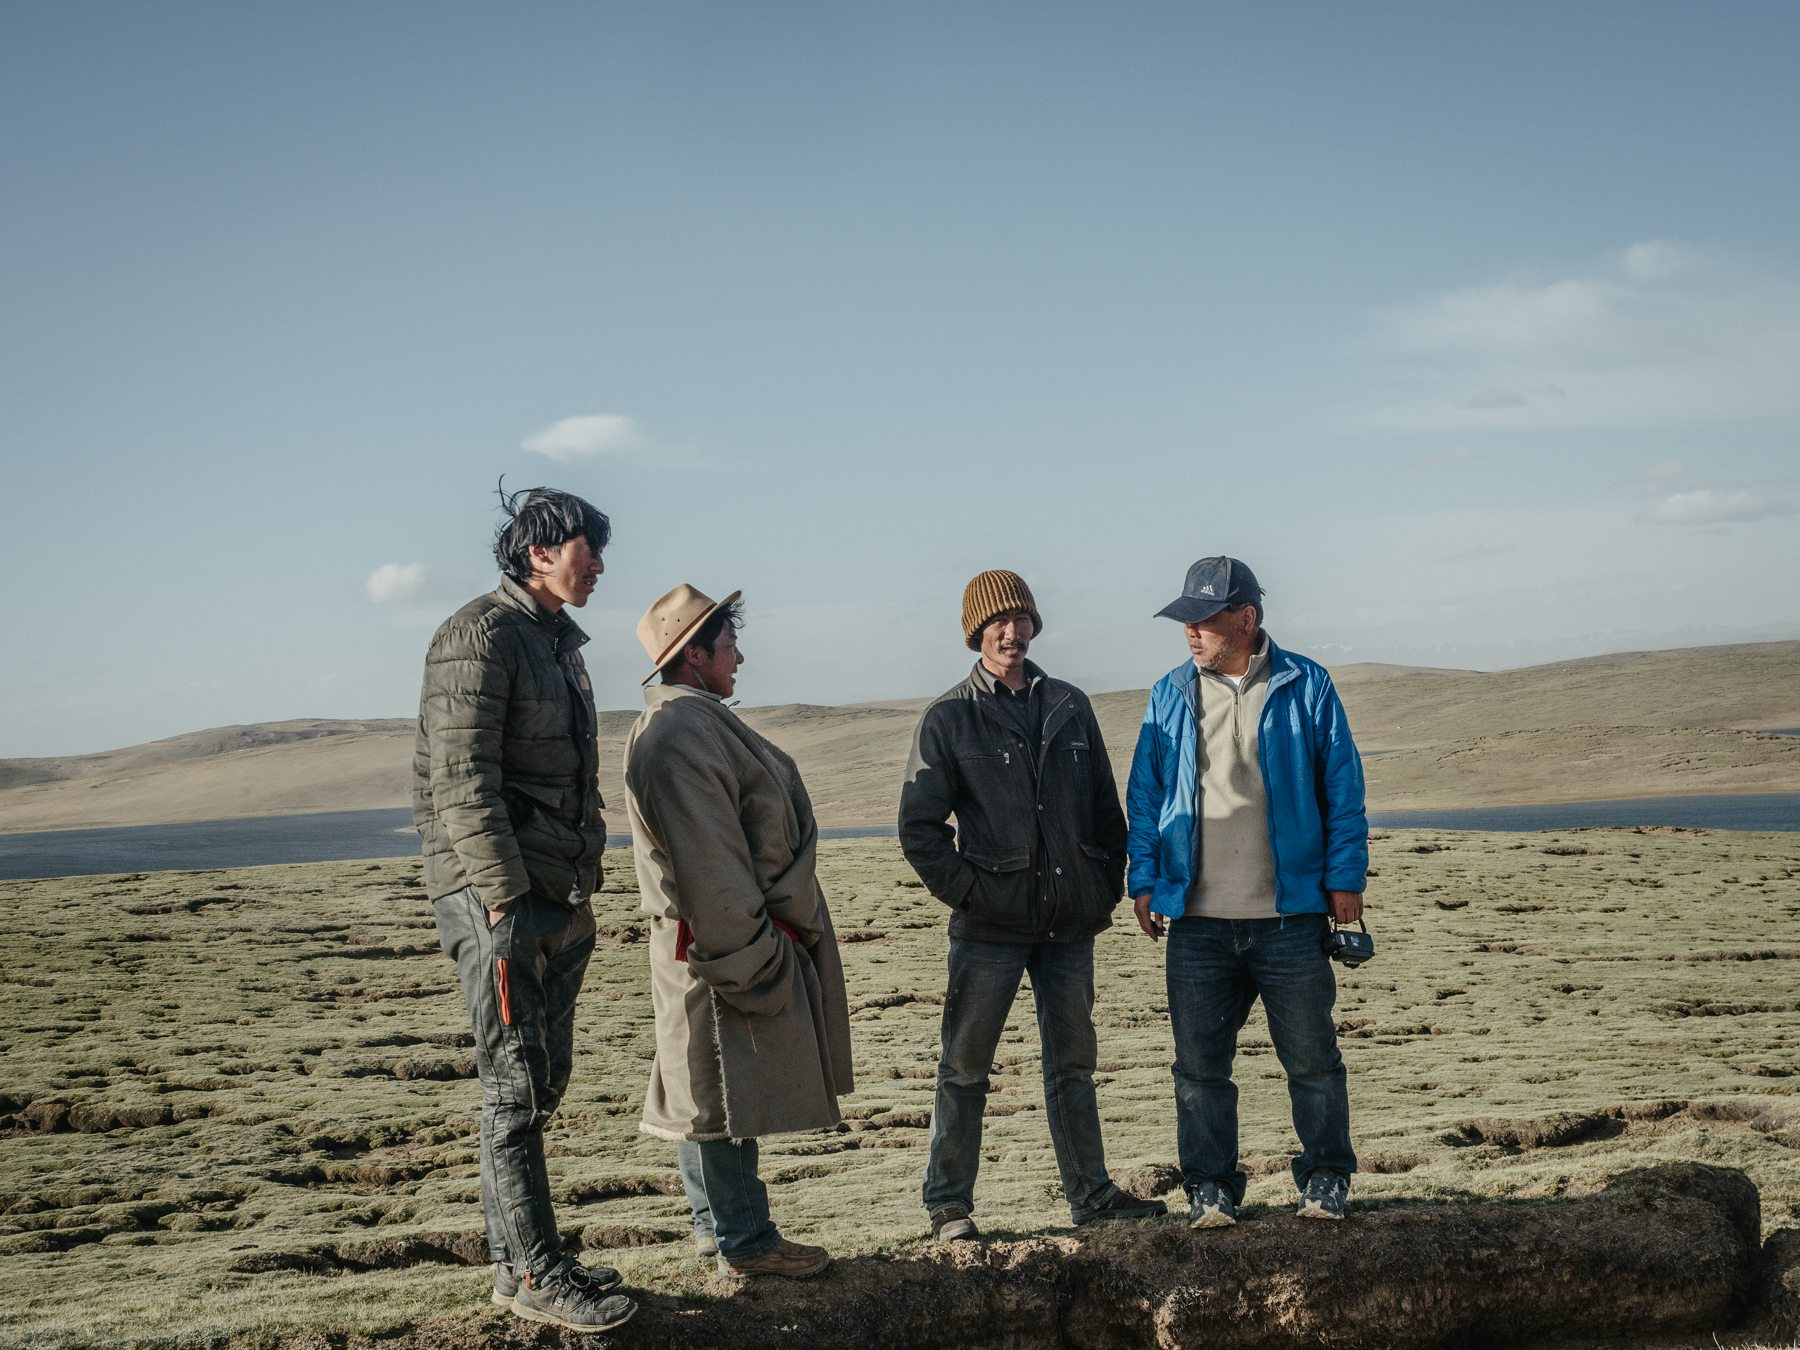 Local Tibetans (left three) greet Yang at the campsite next to the lakes Gangnagemacuo and Rigecuochama. The ground that they stand on shows visible cracks, with sections of the frozen ground having melted and collapsed. This exposes the thin layer of fertile soil to strong winds and burrowing animals, like hares and pikas, causing further degradation and eventual desertification. Yang says that climate change is accelerating desertification of the mountain grasslands.